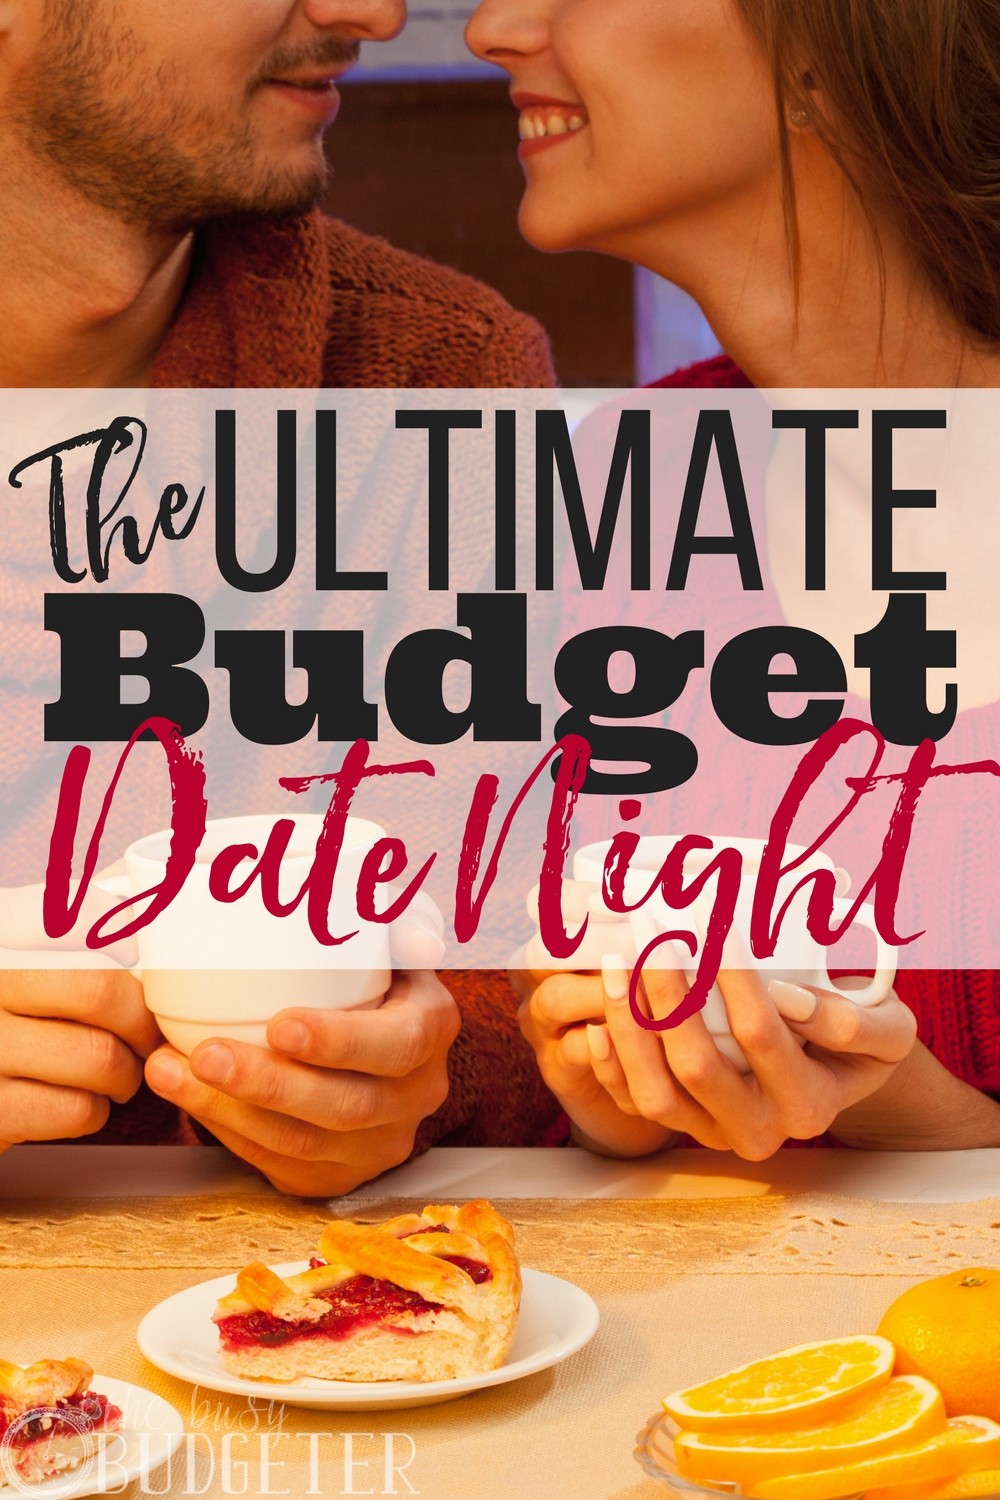 The Ultimate Budget Date Night- What a great idea! My husband and I are drowning in debt and with 2 kids we never get time to ourselves. Not only does this give us a chance to spend some time together we also get to develop a plan to get us out of this mess. Fun budgeting activities - who knew? Can't wait to get started!